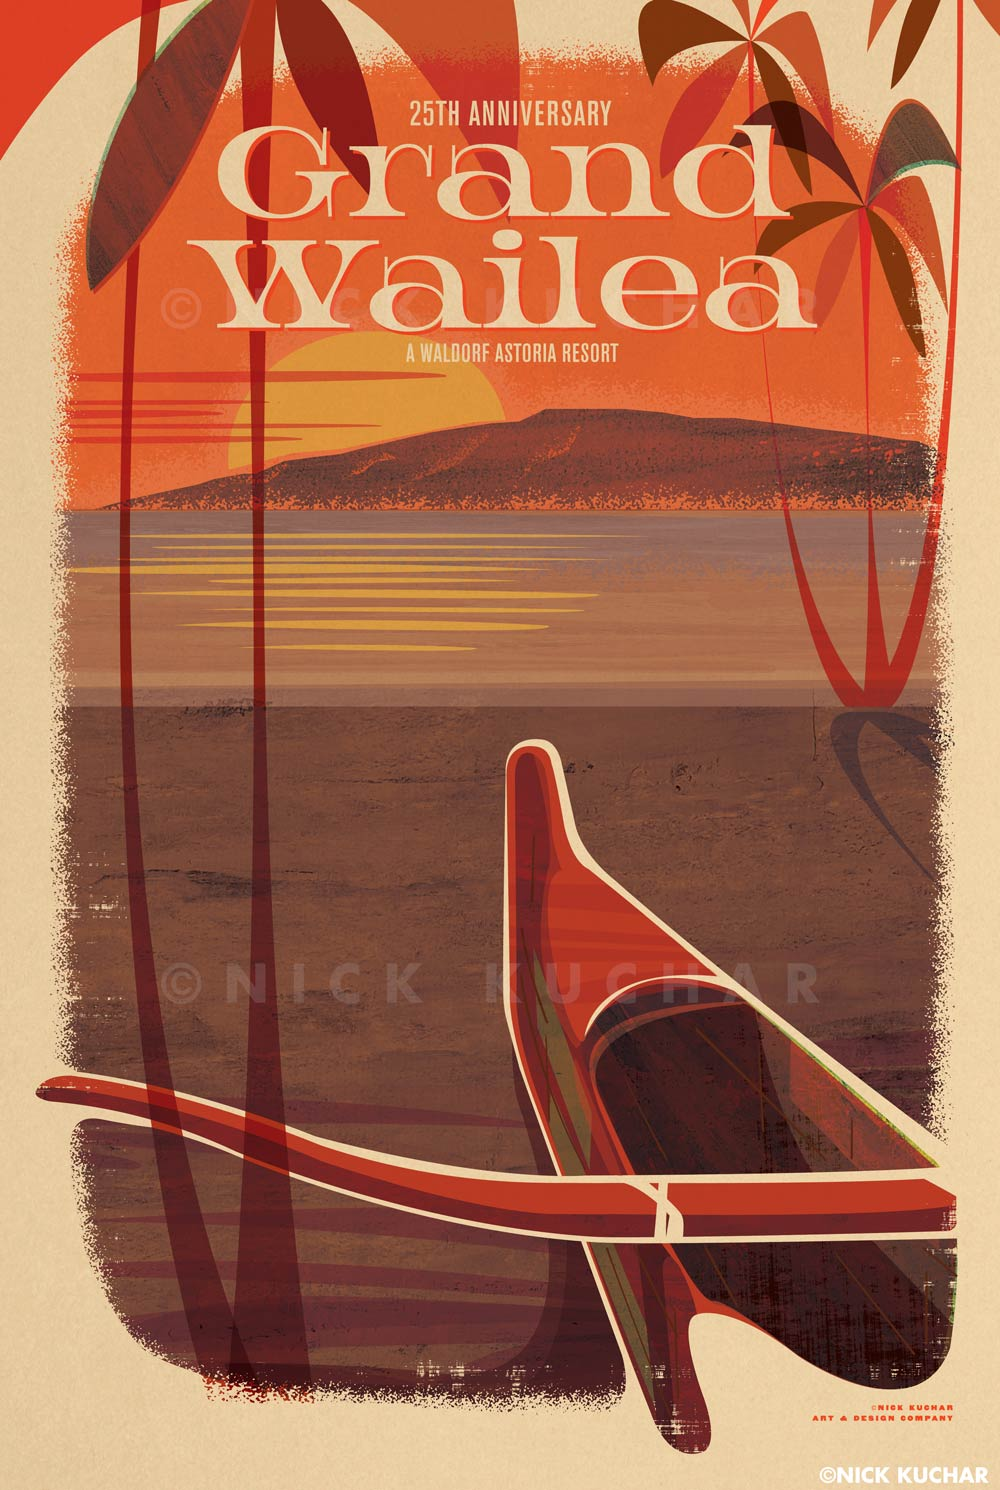 nick-kuchar-vintage-inspired-grand-wailea-sunset-print